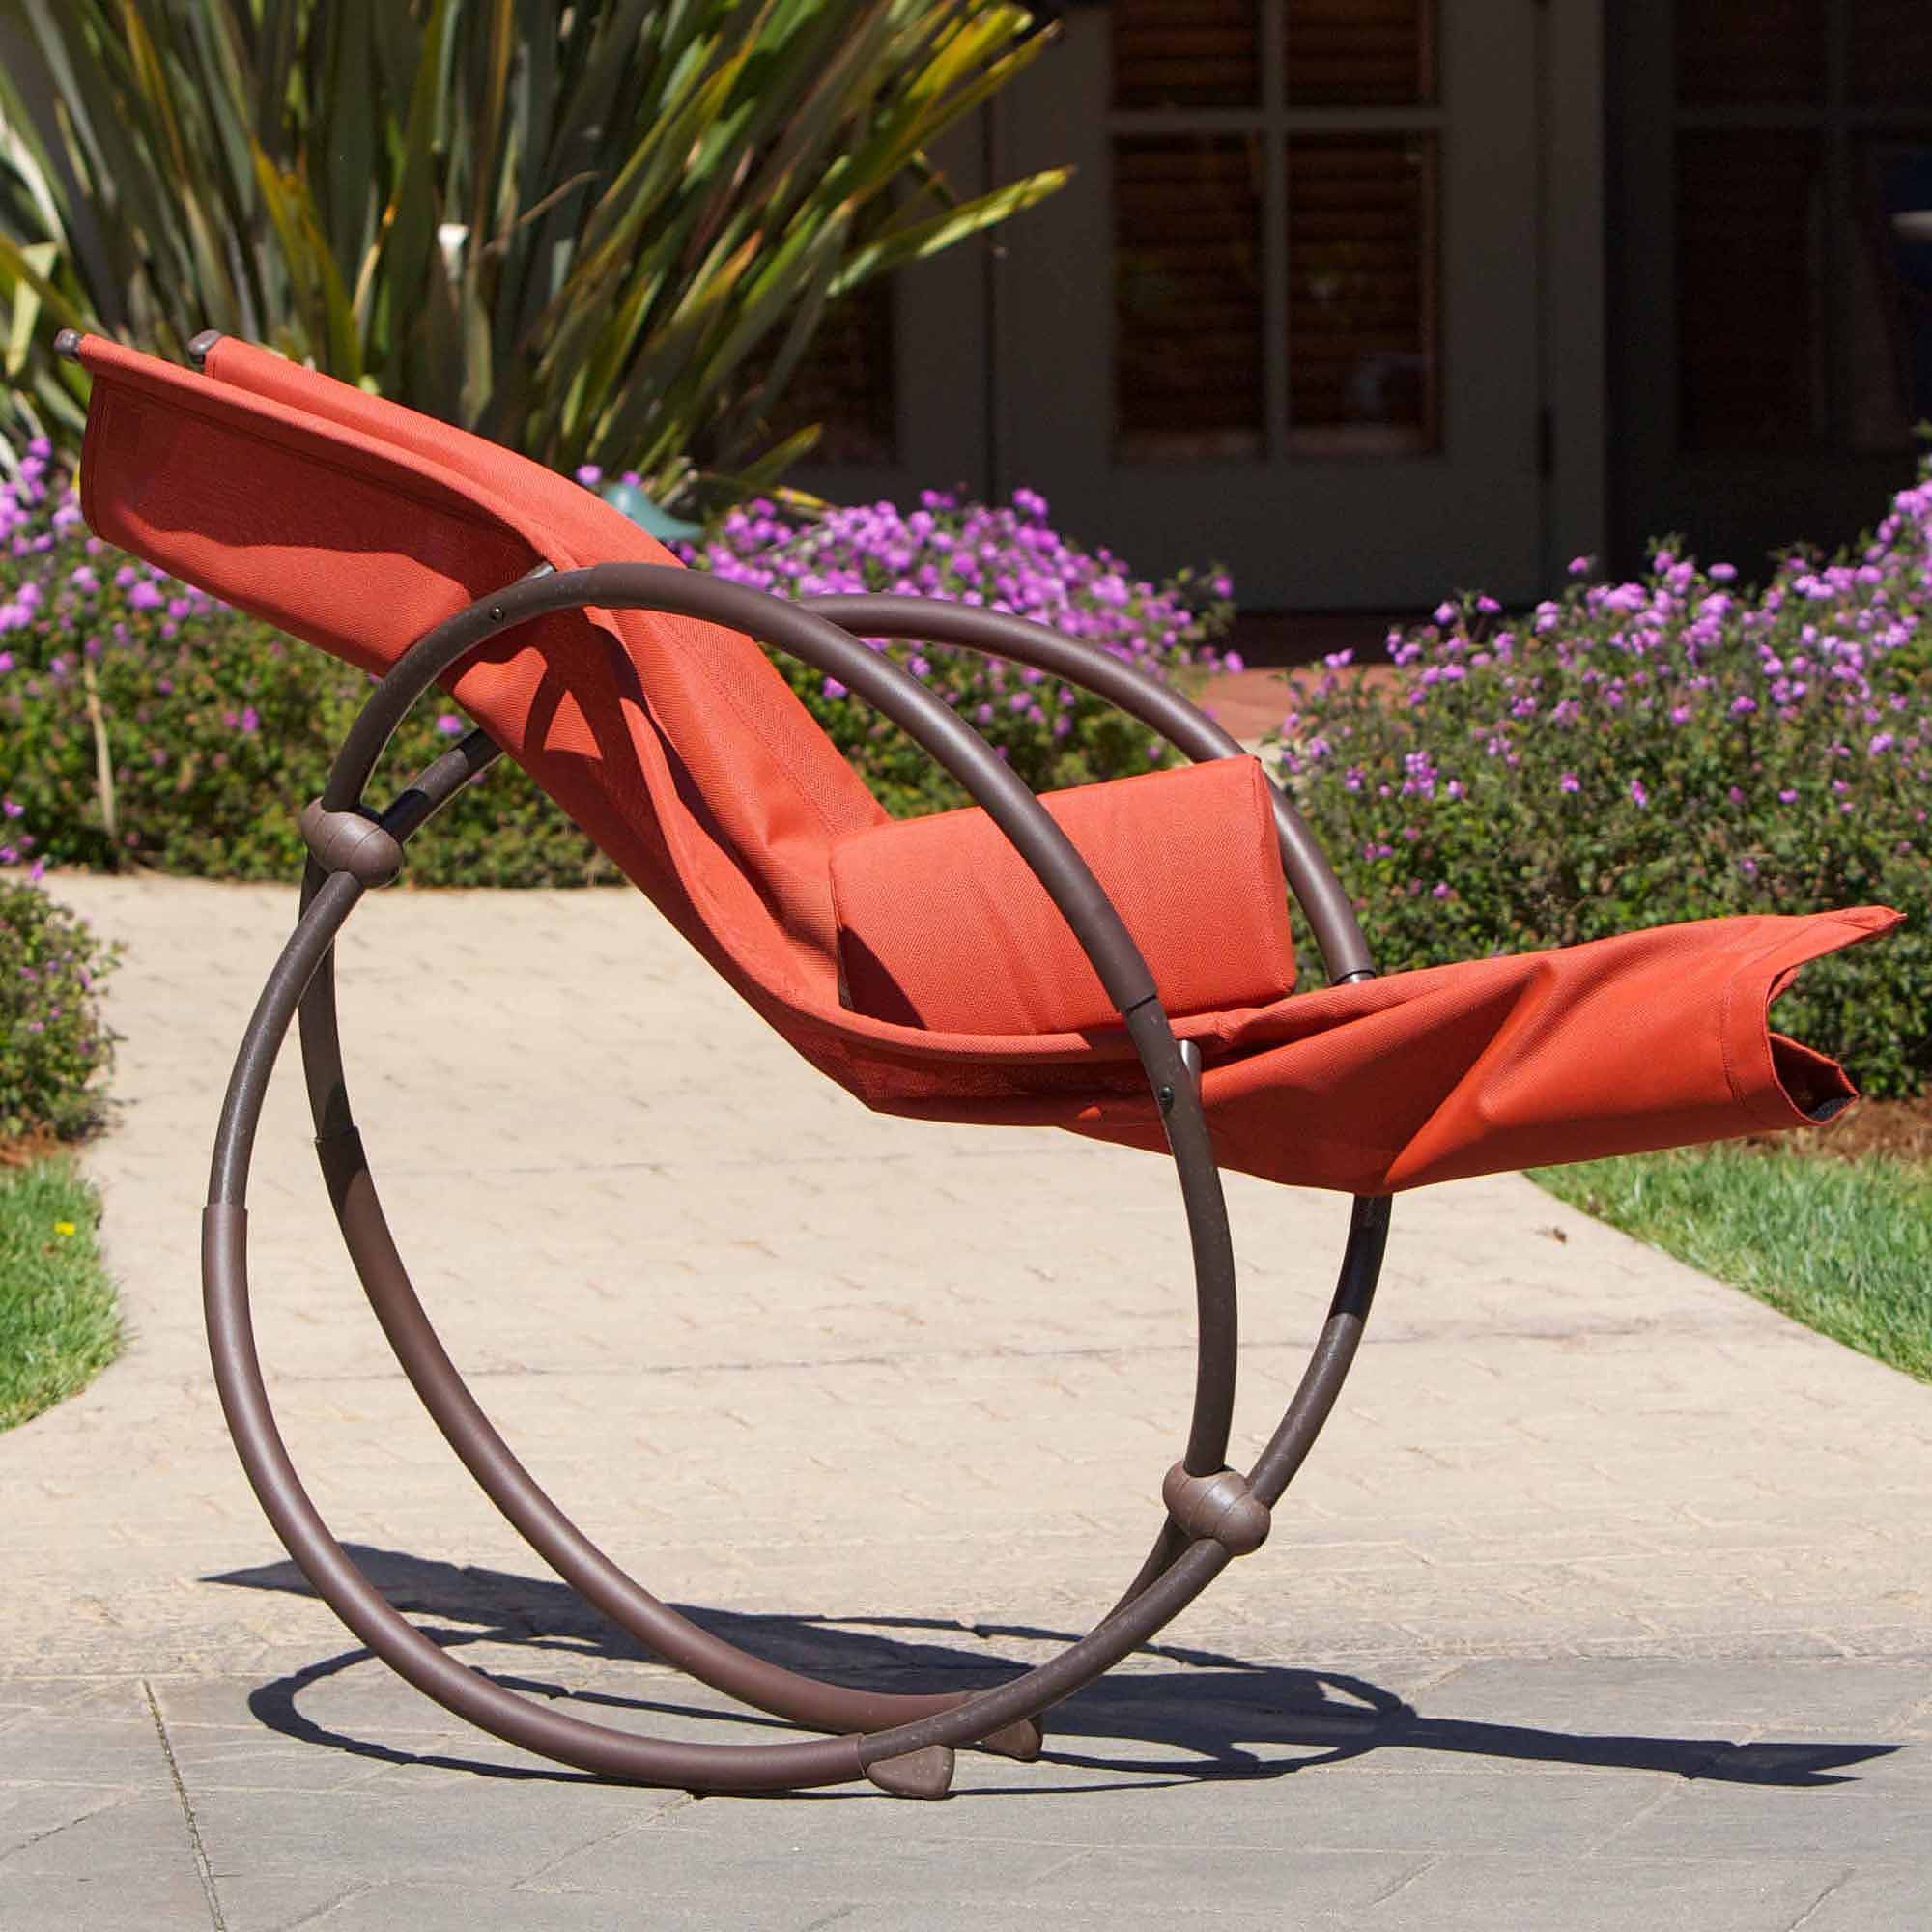 Attractive Orbital Lounger for Patio Chair Inspirations: Graco Little Lounger | Orbital Lounger | Boppy Newborn Lounger